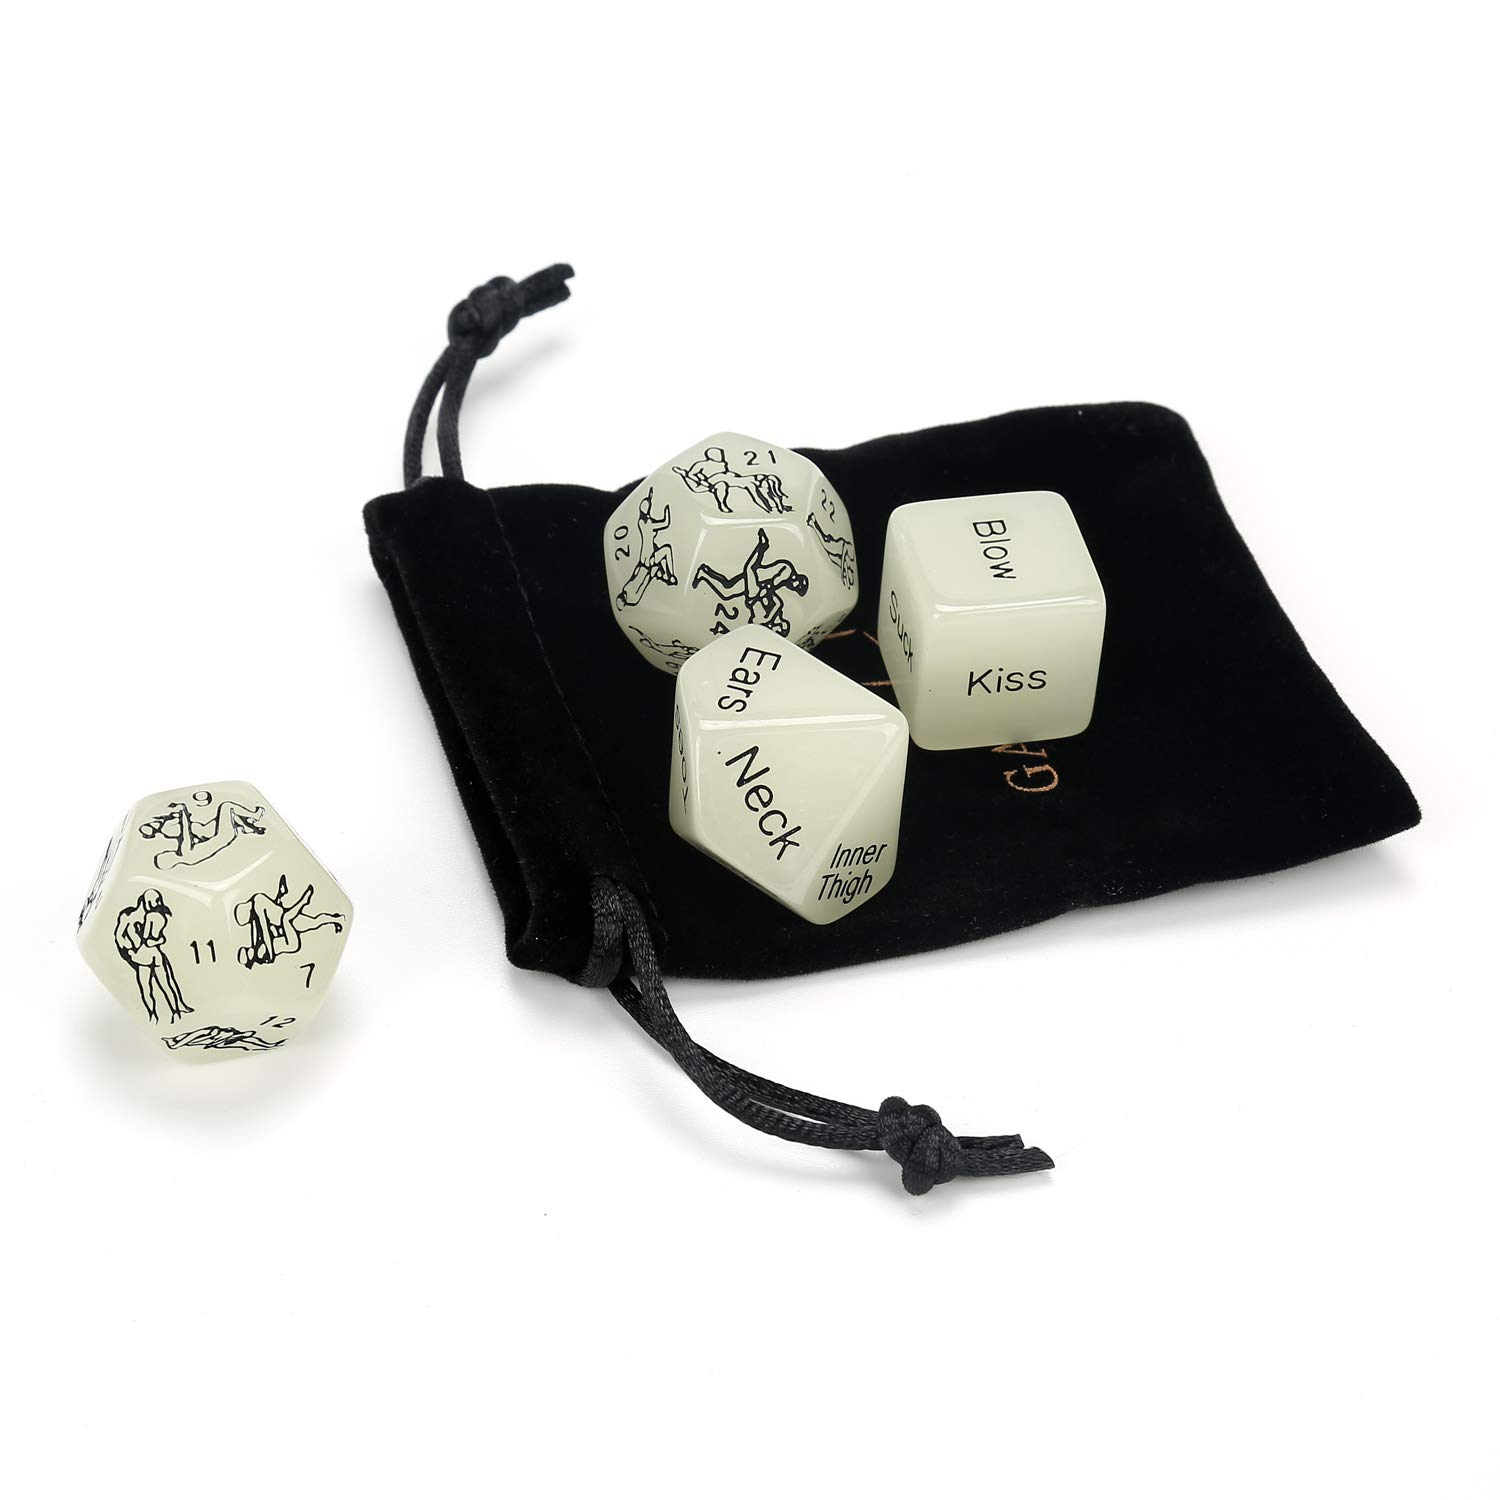 Black. Wedding Funny Romantic Party Luminous Dice Game Set of 4,Novelty Gift for Warm up Honeymoon bacherette Party,Him and Her Groom Roast,Newlyweds Anniversary Marriage Bridal Shower